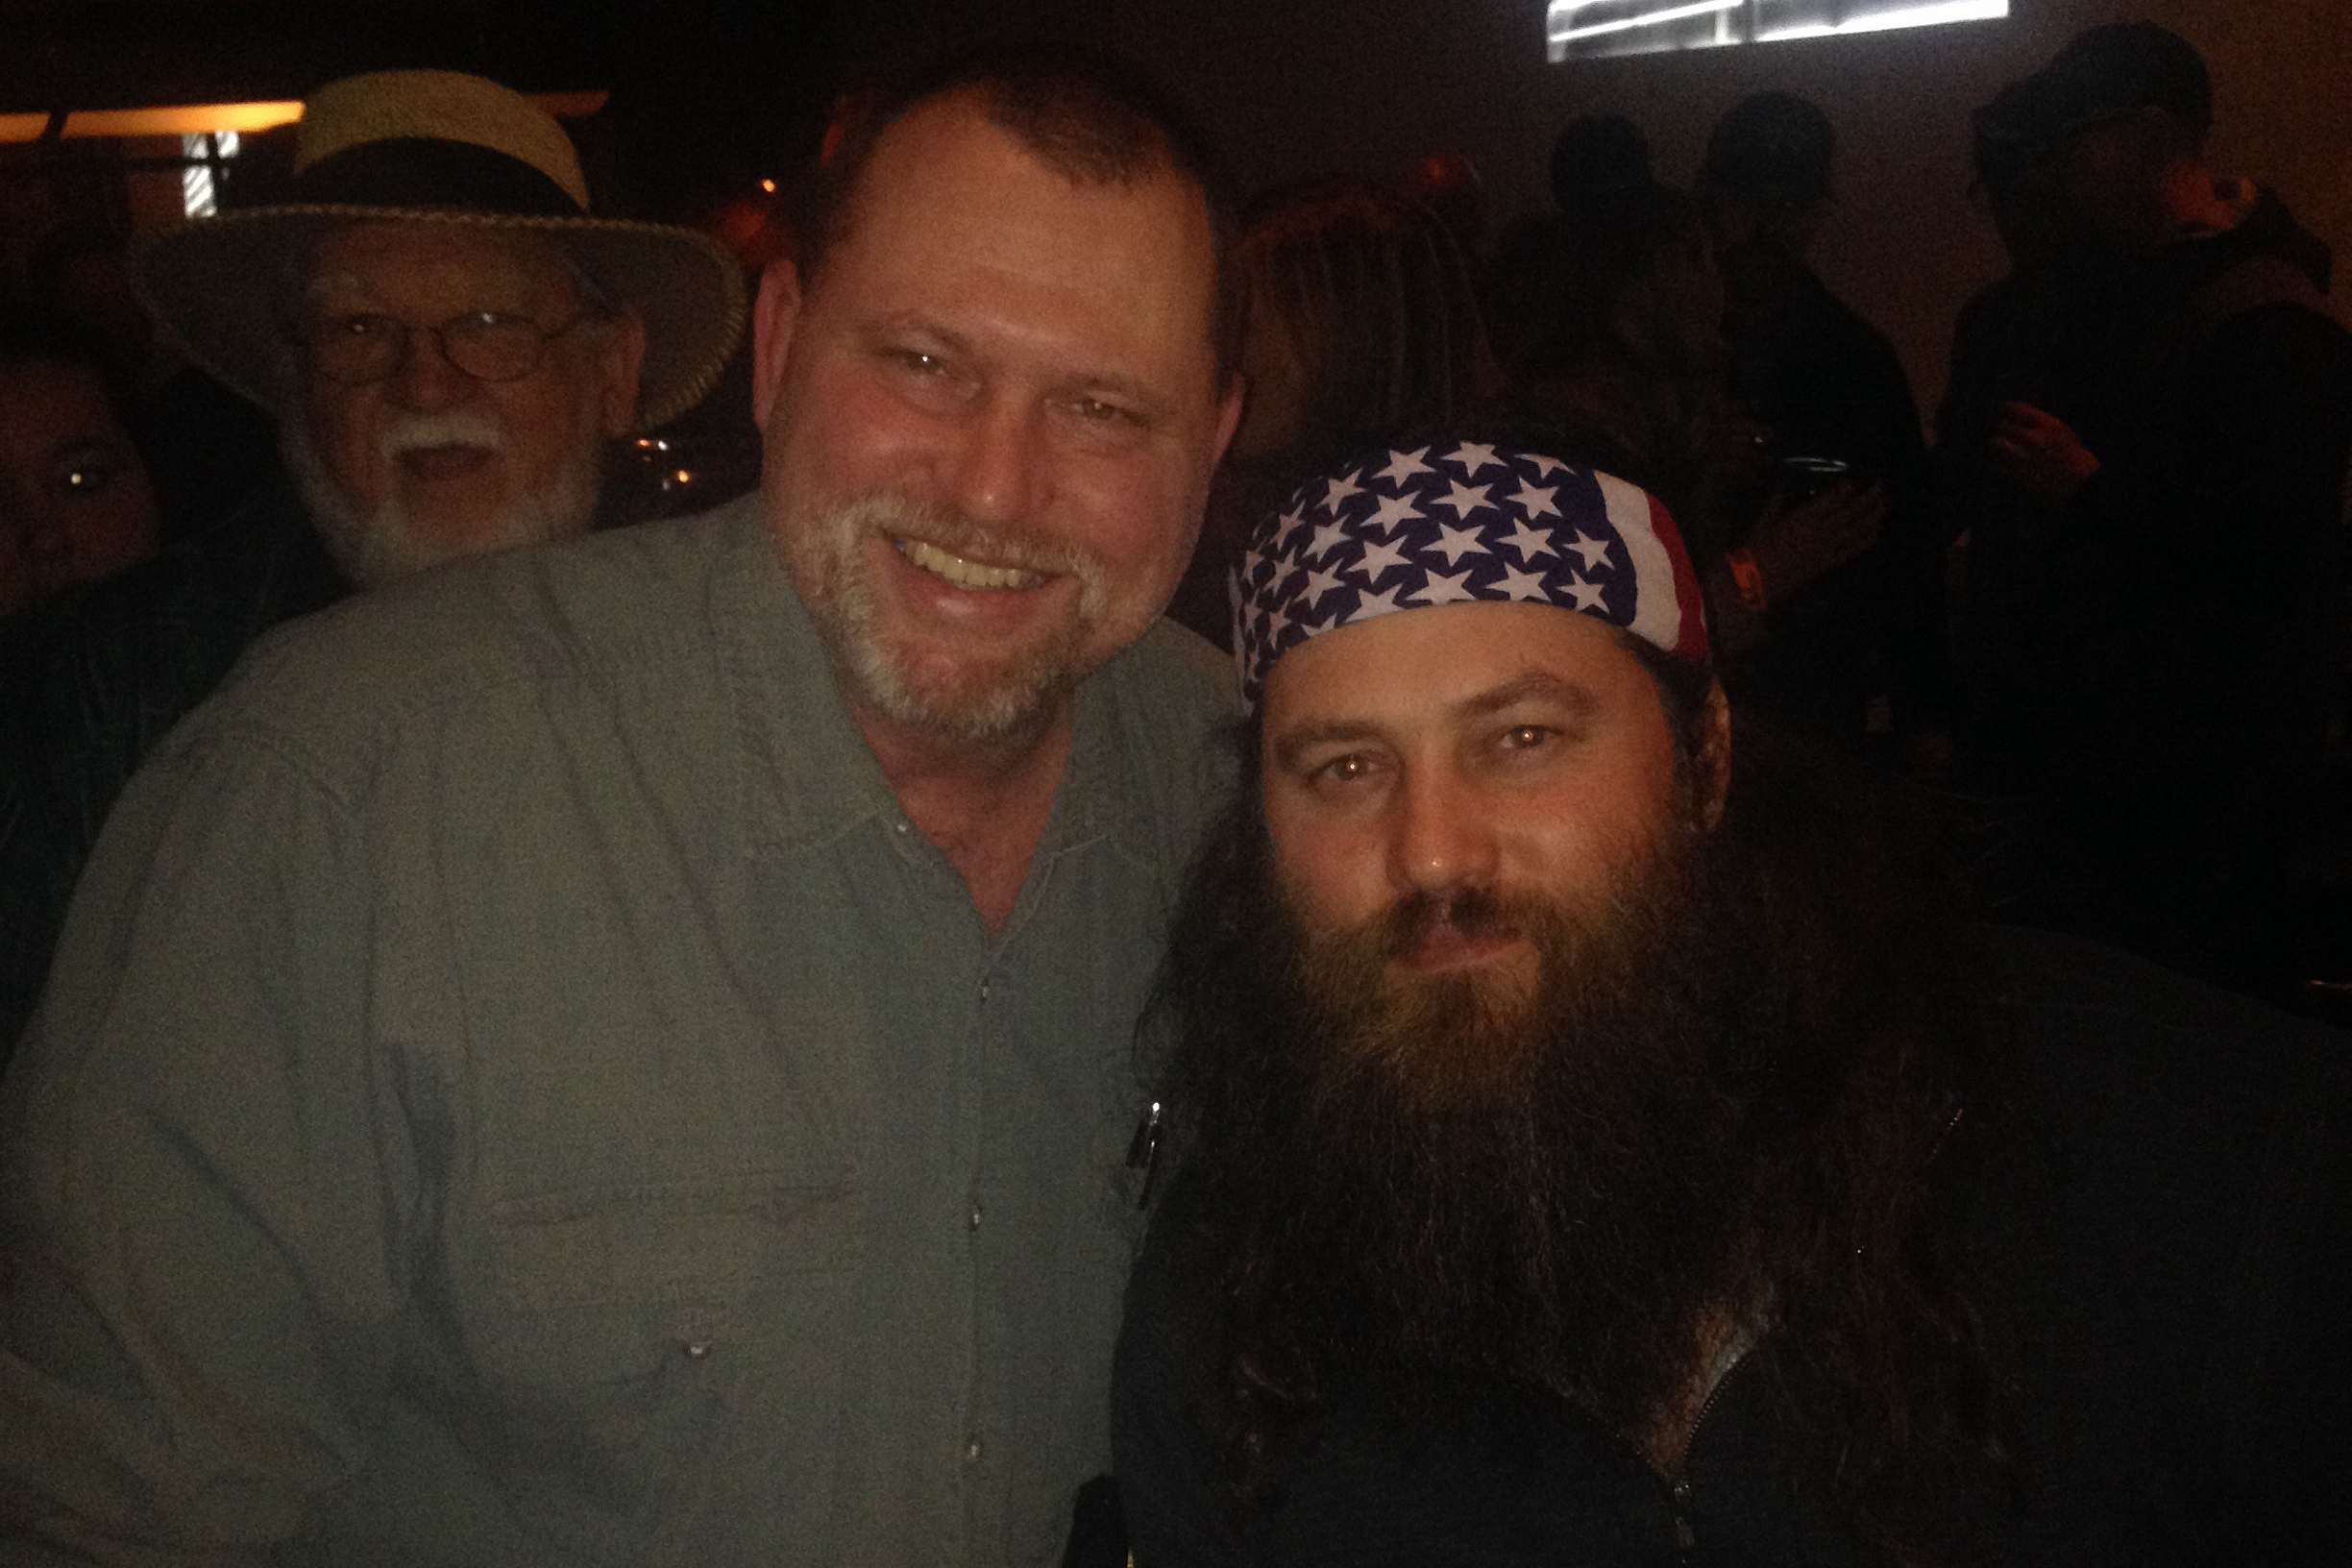 Envy Me or Pity Me – But I Just Shook Hands with Willie Robertson and Loved It